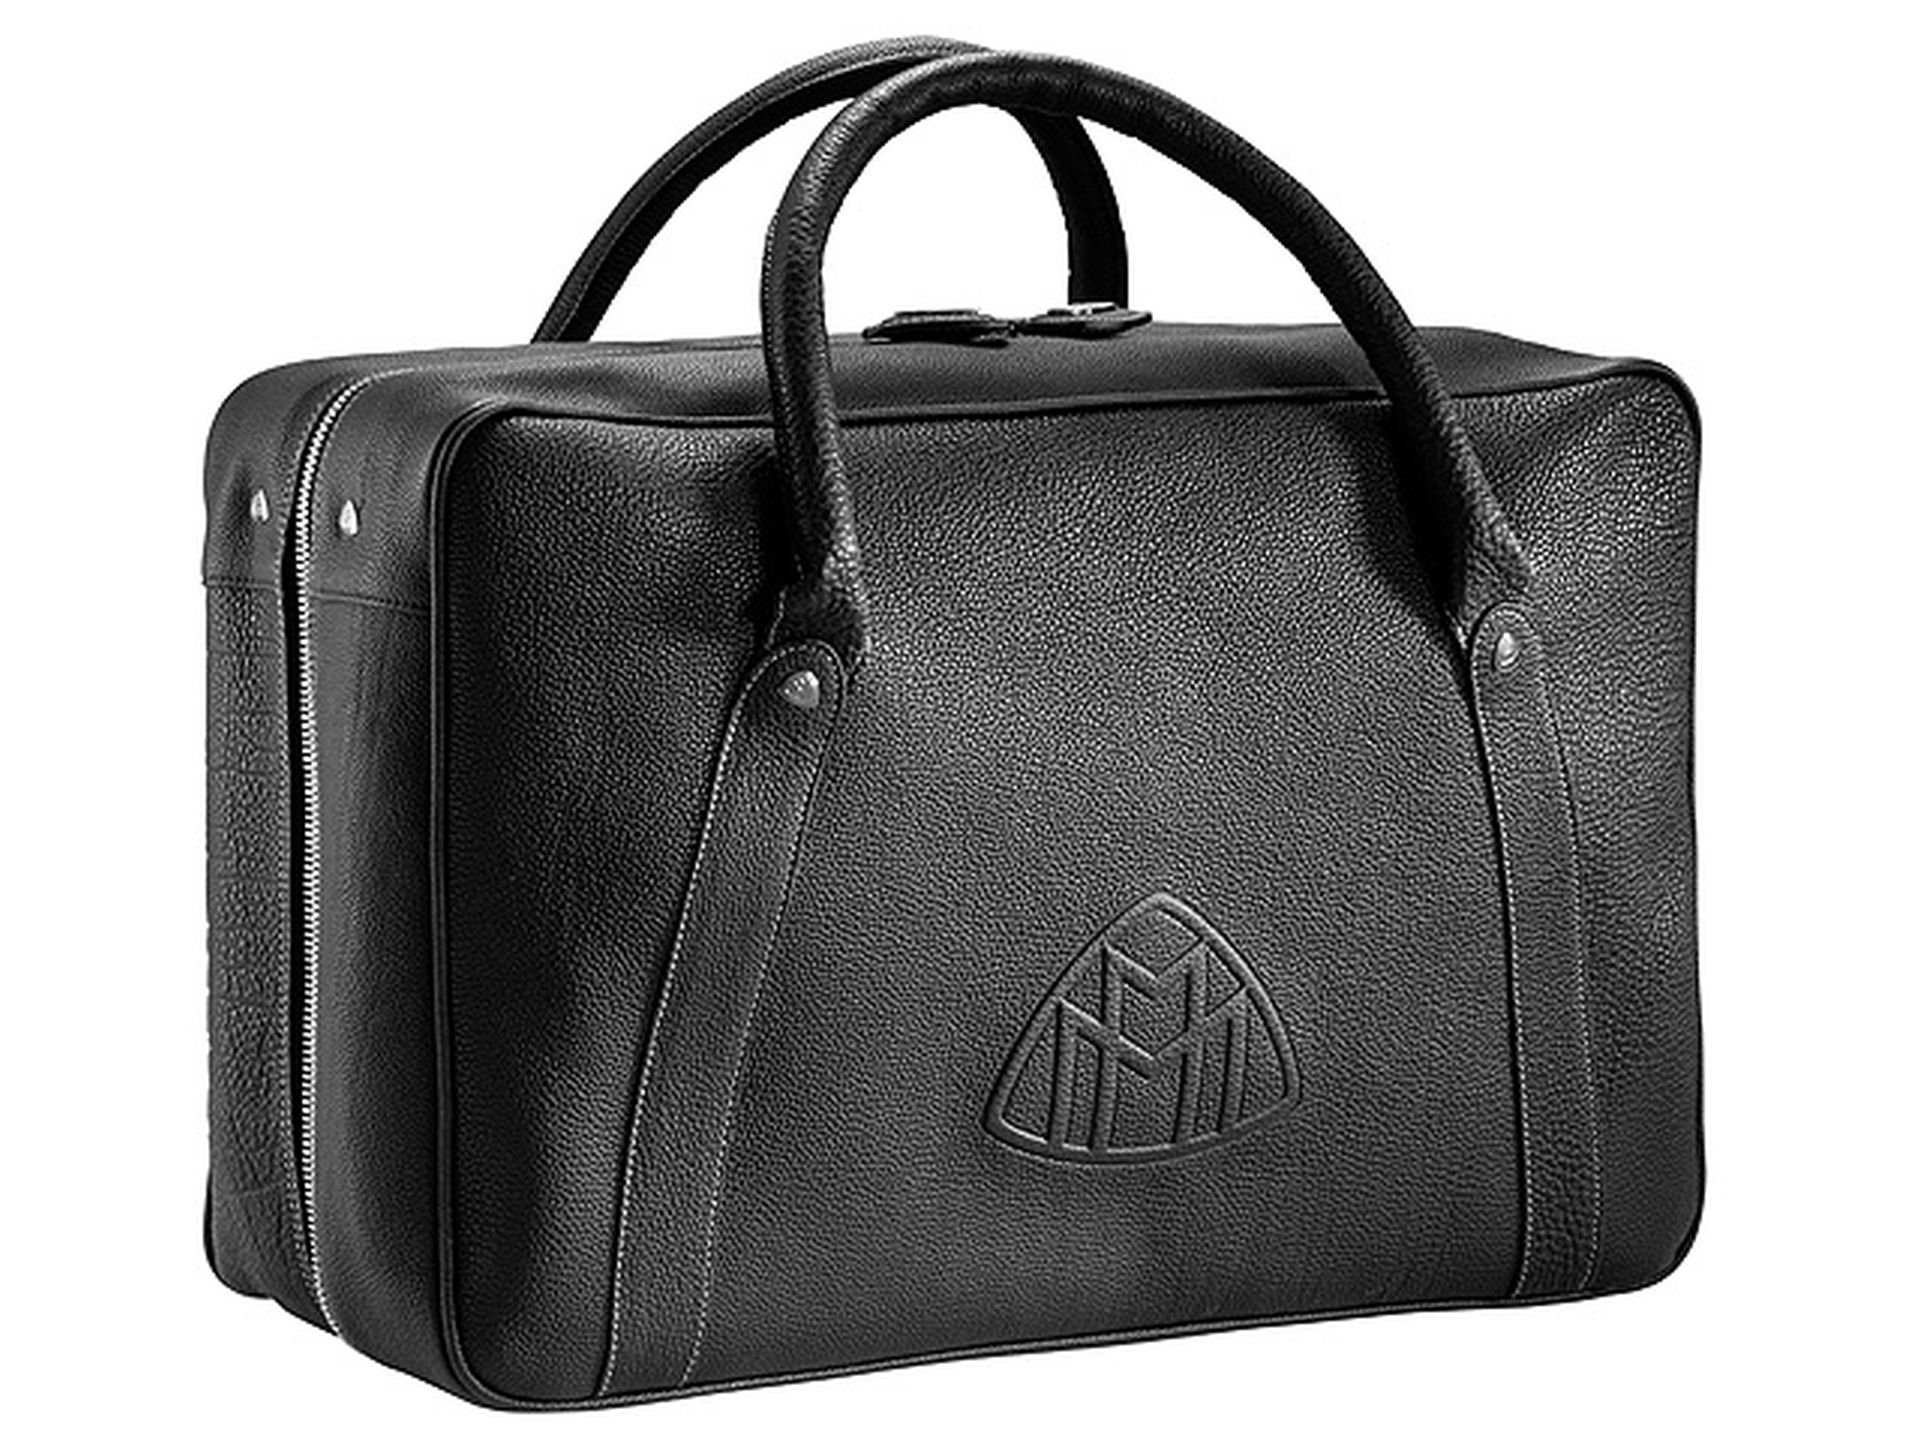 Mercedes Benz,exclusive Maybach Holdall black travelbag, suitcase overnight bag by Maybach